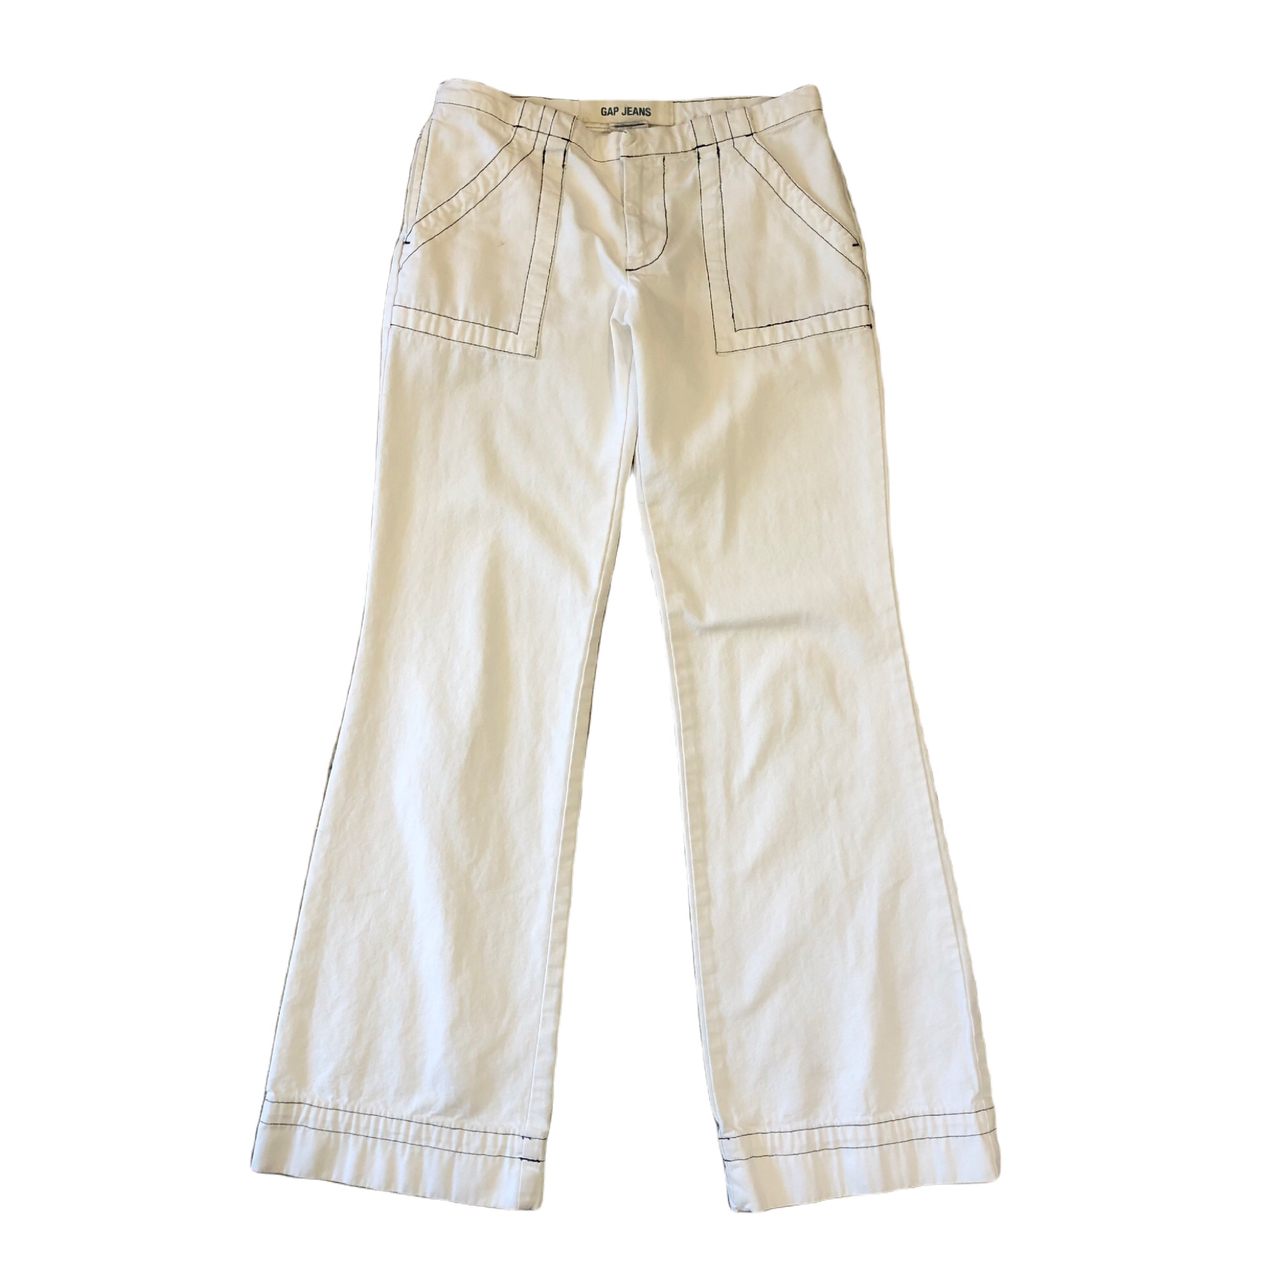 Old Gap White Flare Pants ¥5,800+tax